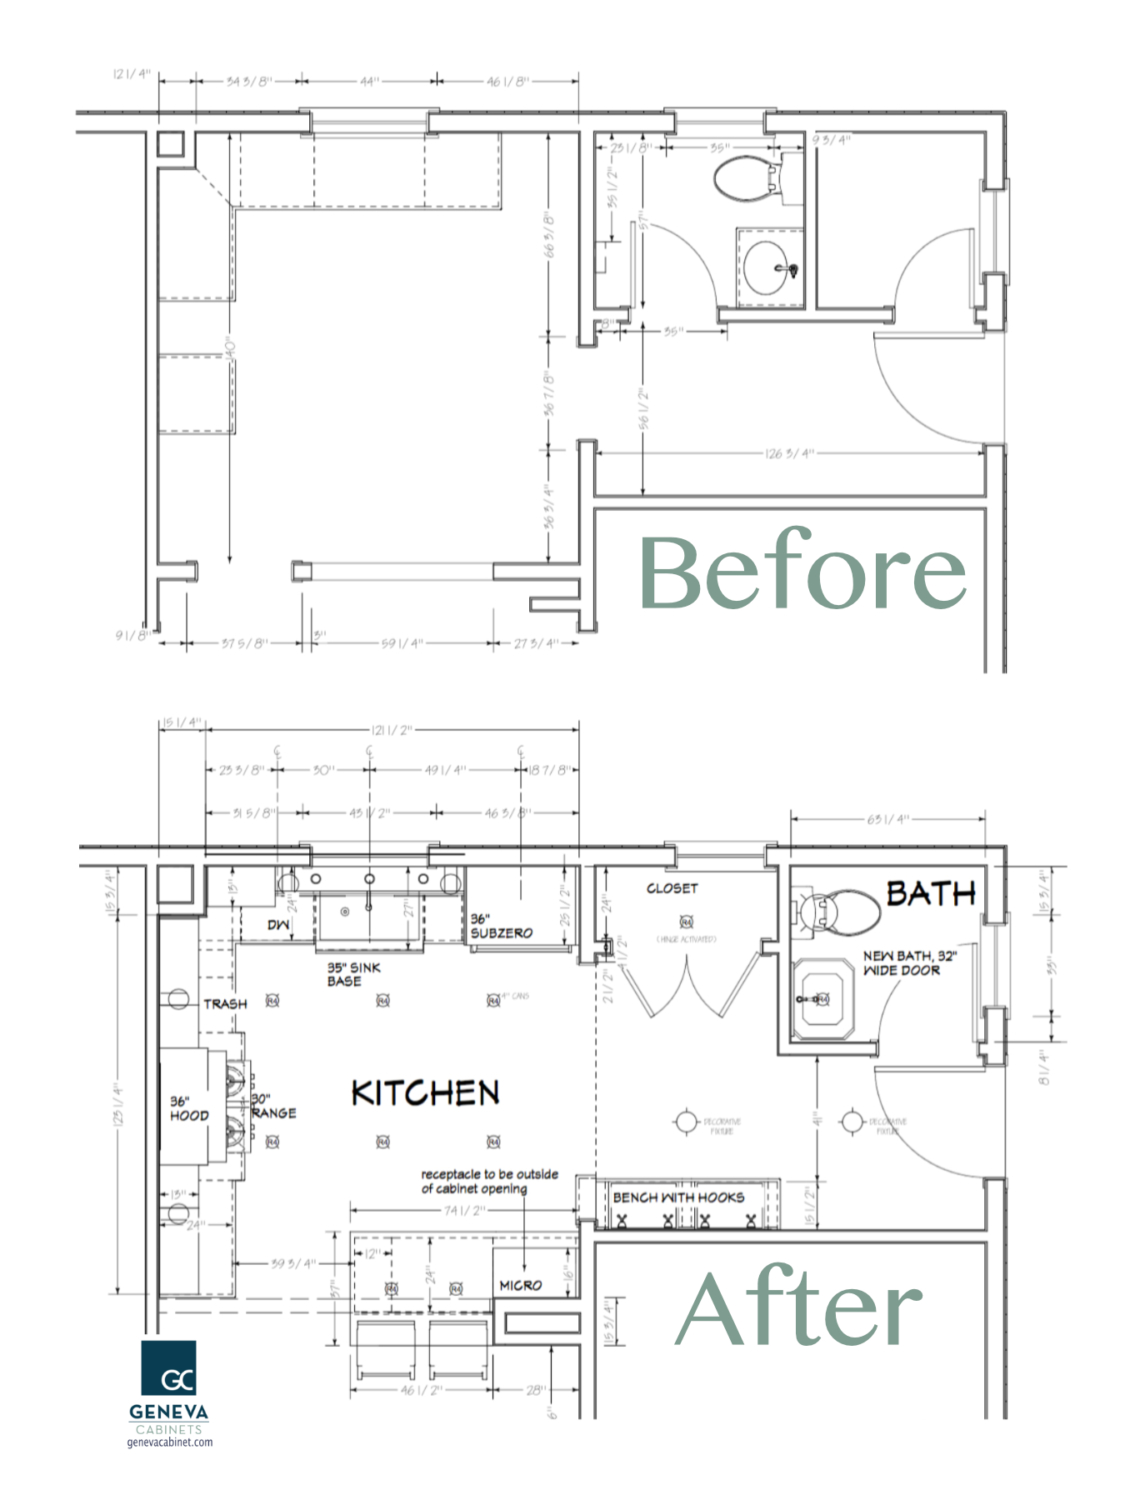 Phenomenal Kitchen Remodel Floor Plan Before And After By Geneva Download Free Architecture Designs Rallybritishbridgeorg